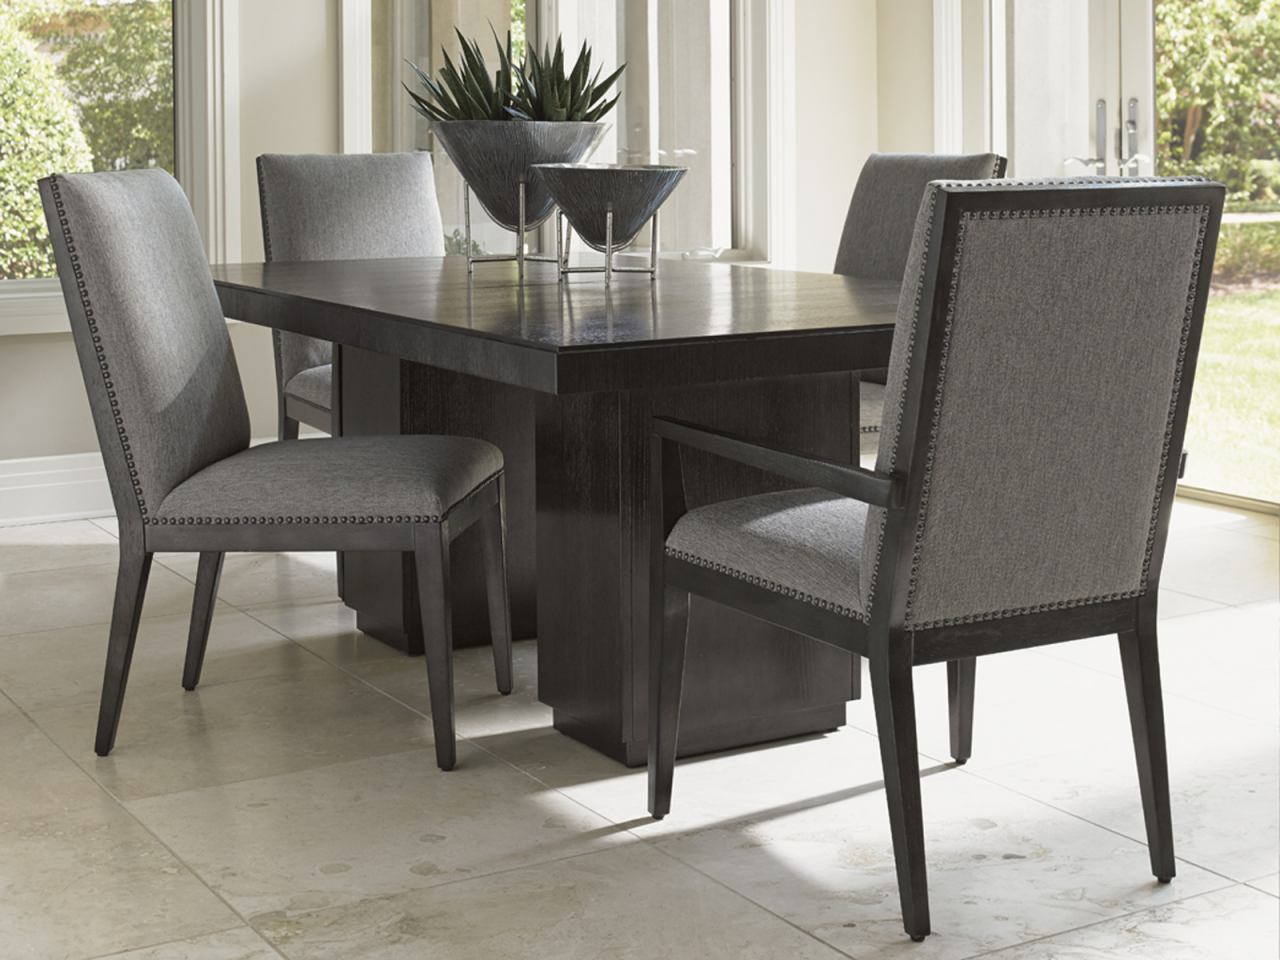 Lexington Furniture Carrera 5 Piece Double Pedestal Dining Set In Carbon Gray Intended For Carrera Contemporary Black Dining Buffets (View 27 of 30)